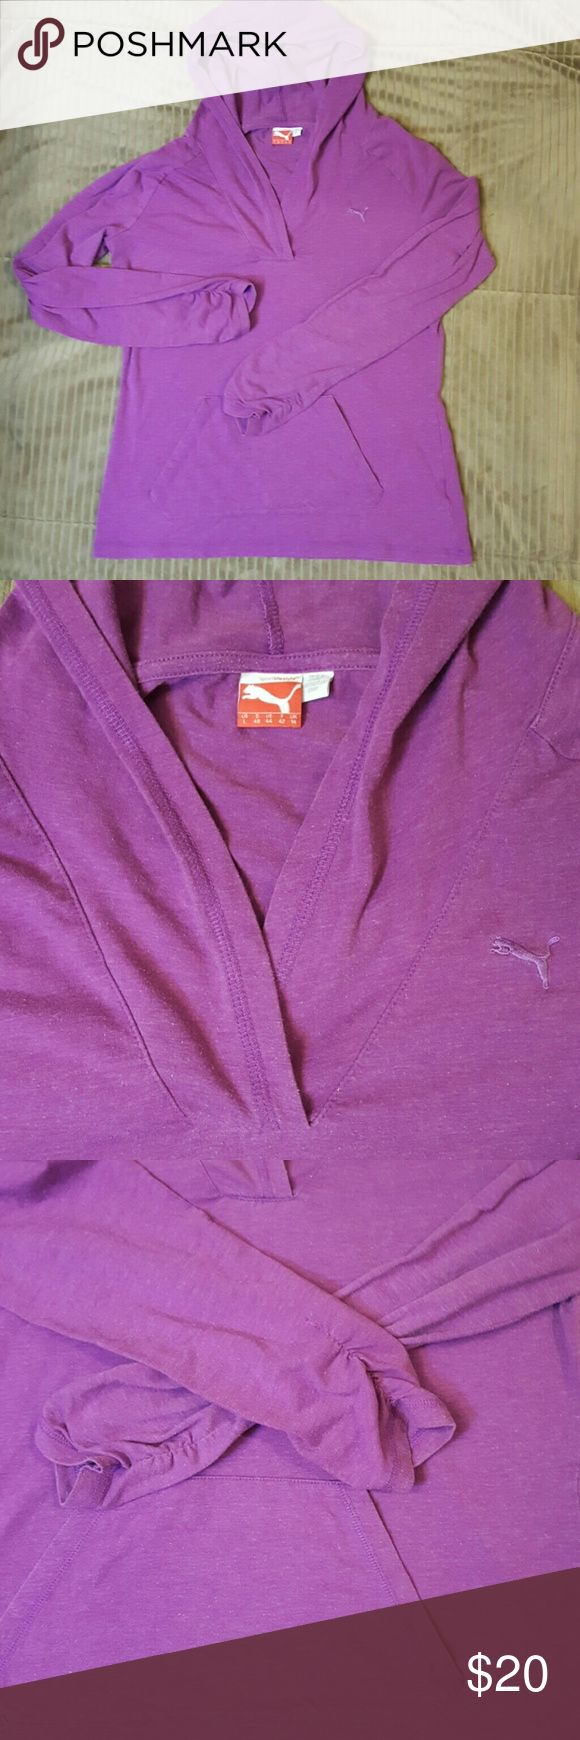 Purple, lightweight PUMA hoodie. Women's large This lightweight knit PUMA hoodie is a beautiful shade of purple. Features one large front pocked andruched sleeves. Women's size large. Great condition! Puma Tops Sweatshirts & Hoodies